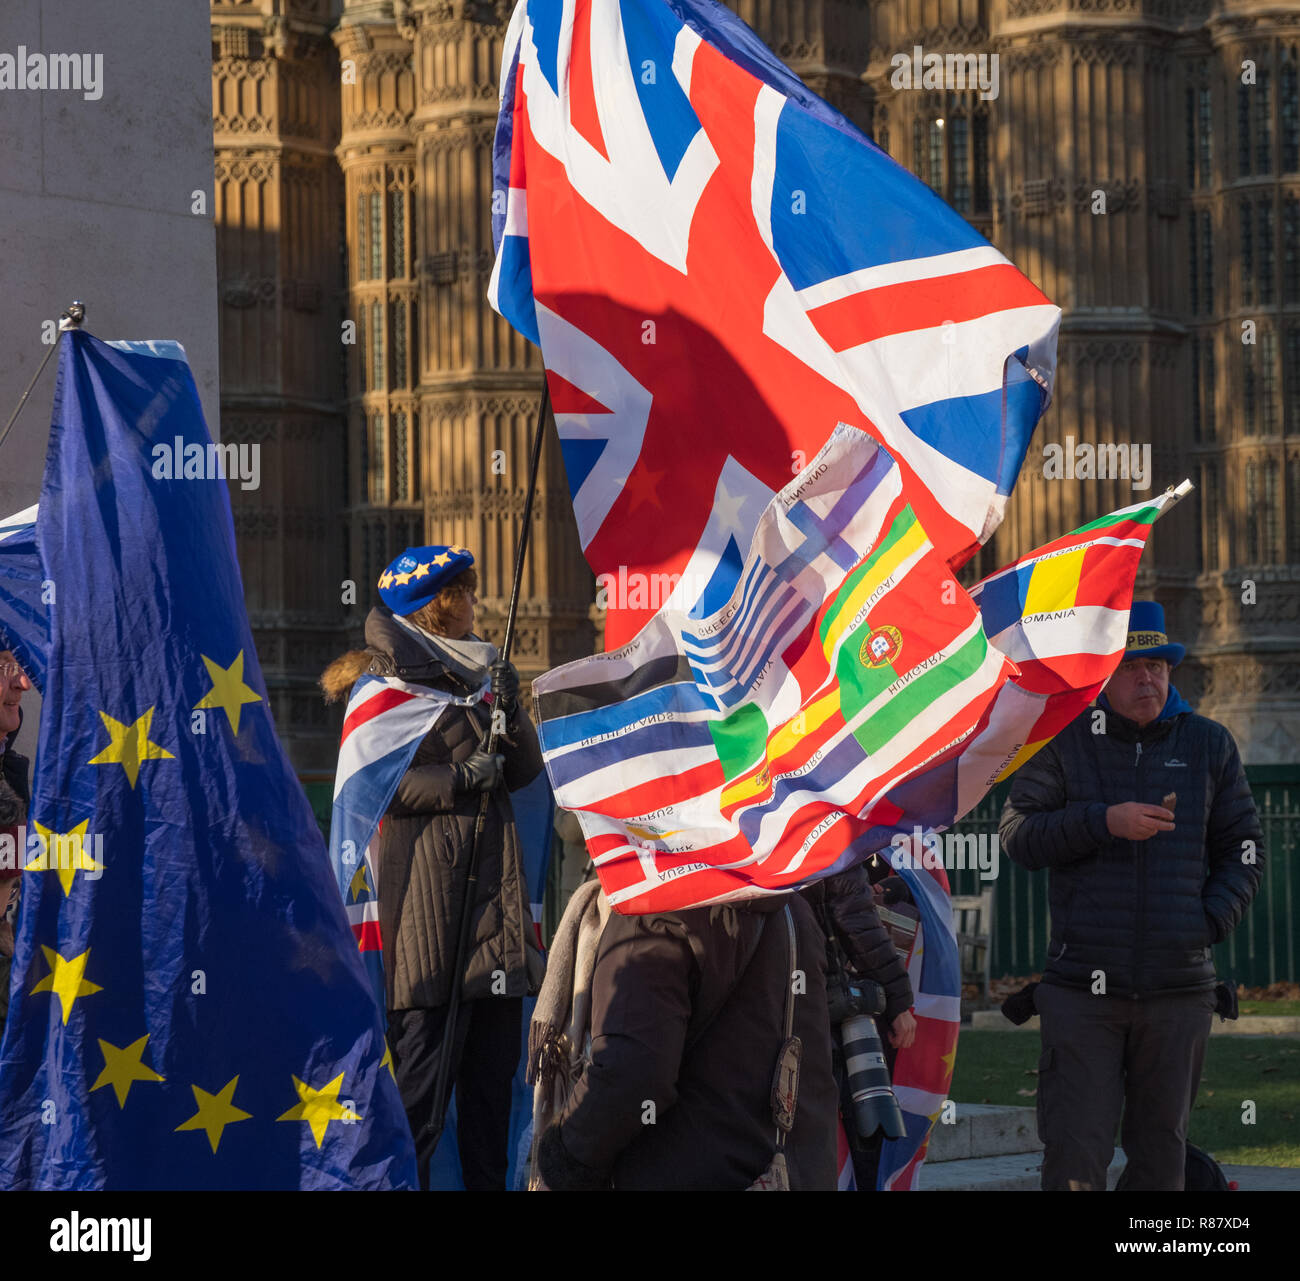 Brexit demonstration in front of George V statue opposite the Houses of Parliament, Abingdon Street, London - Stock Image